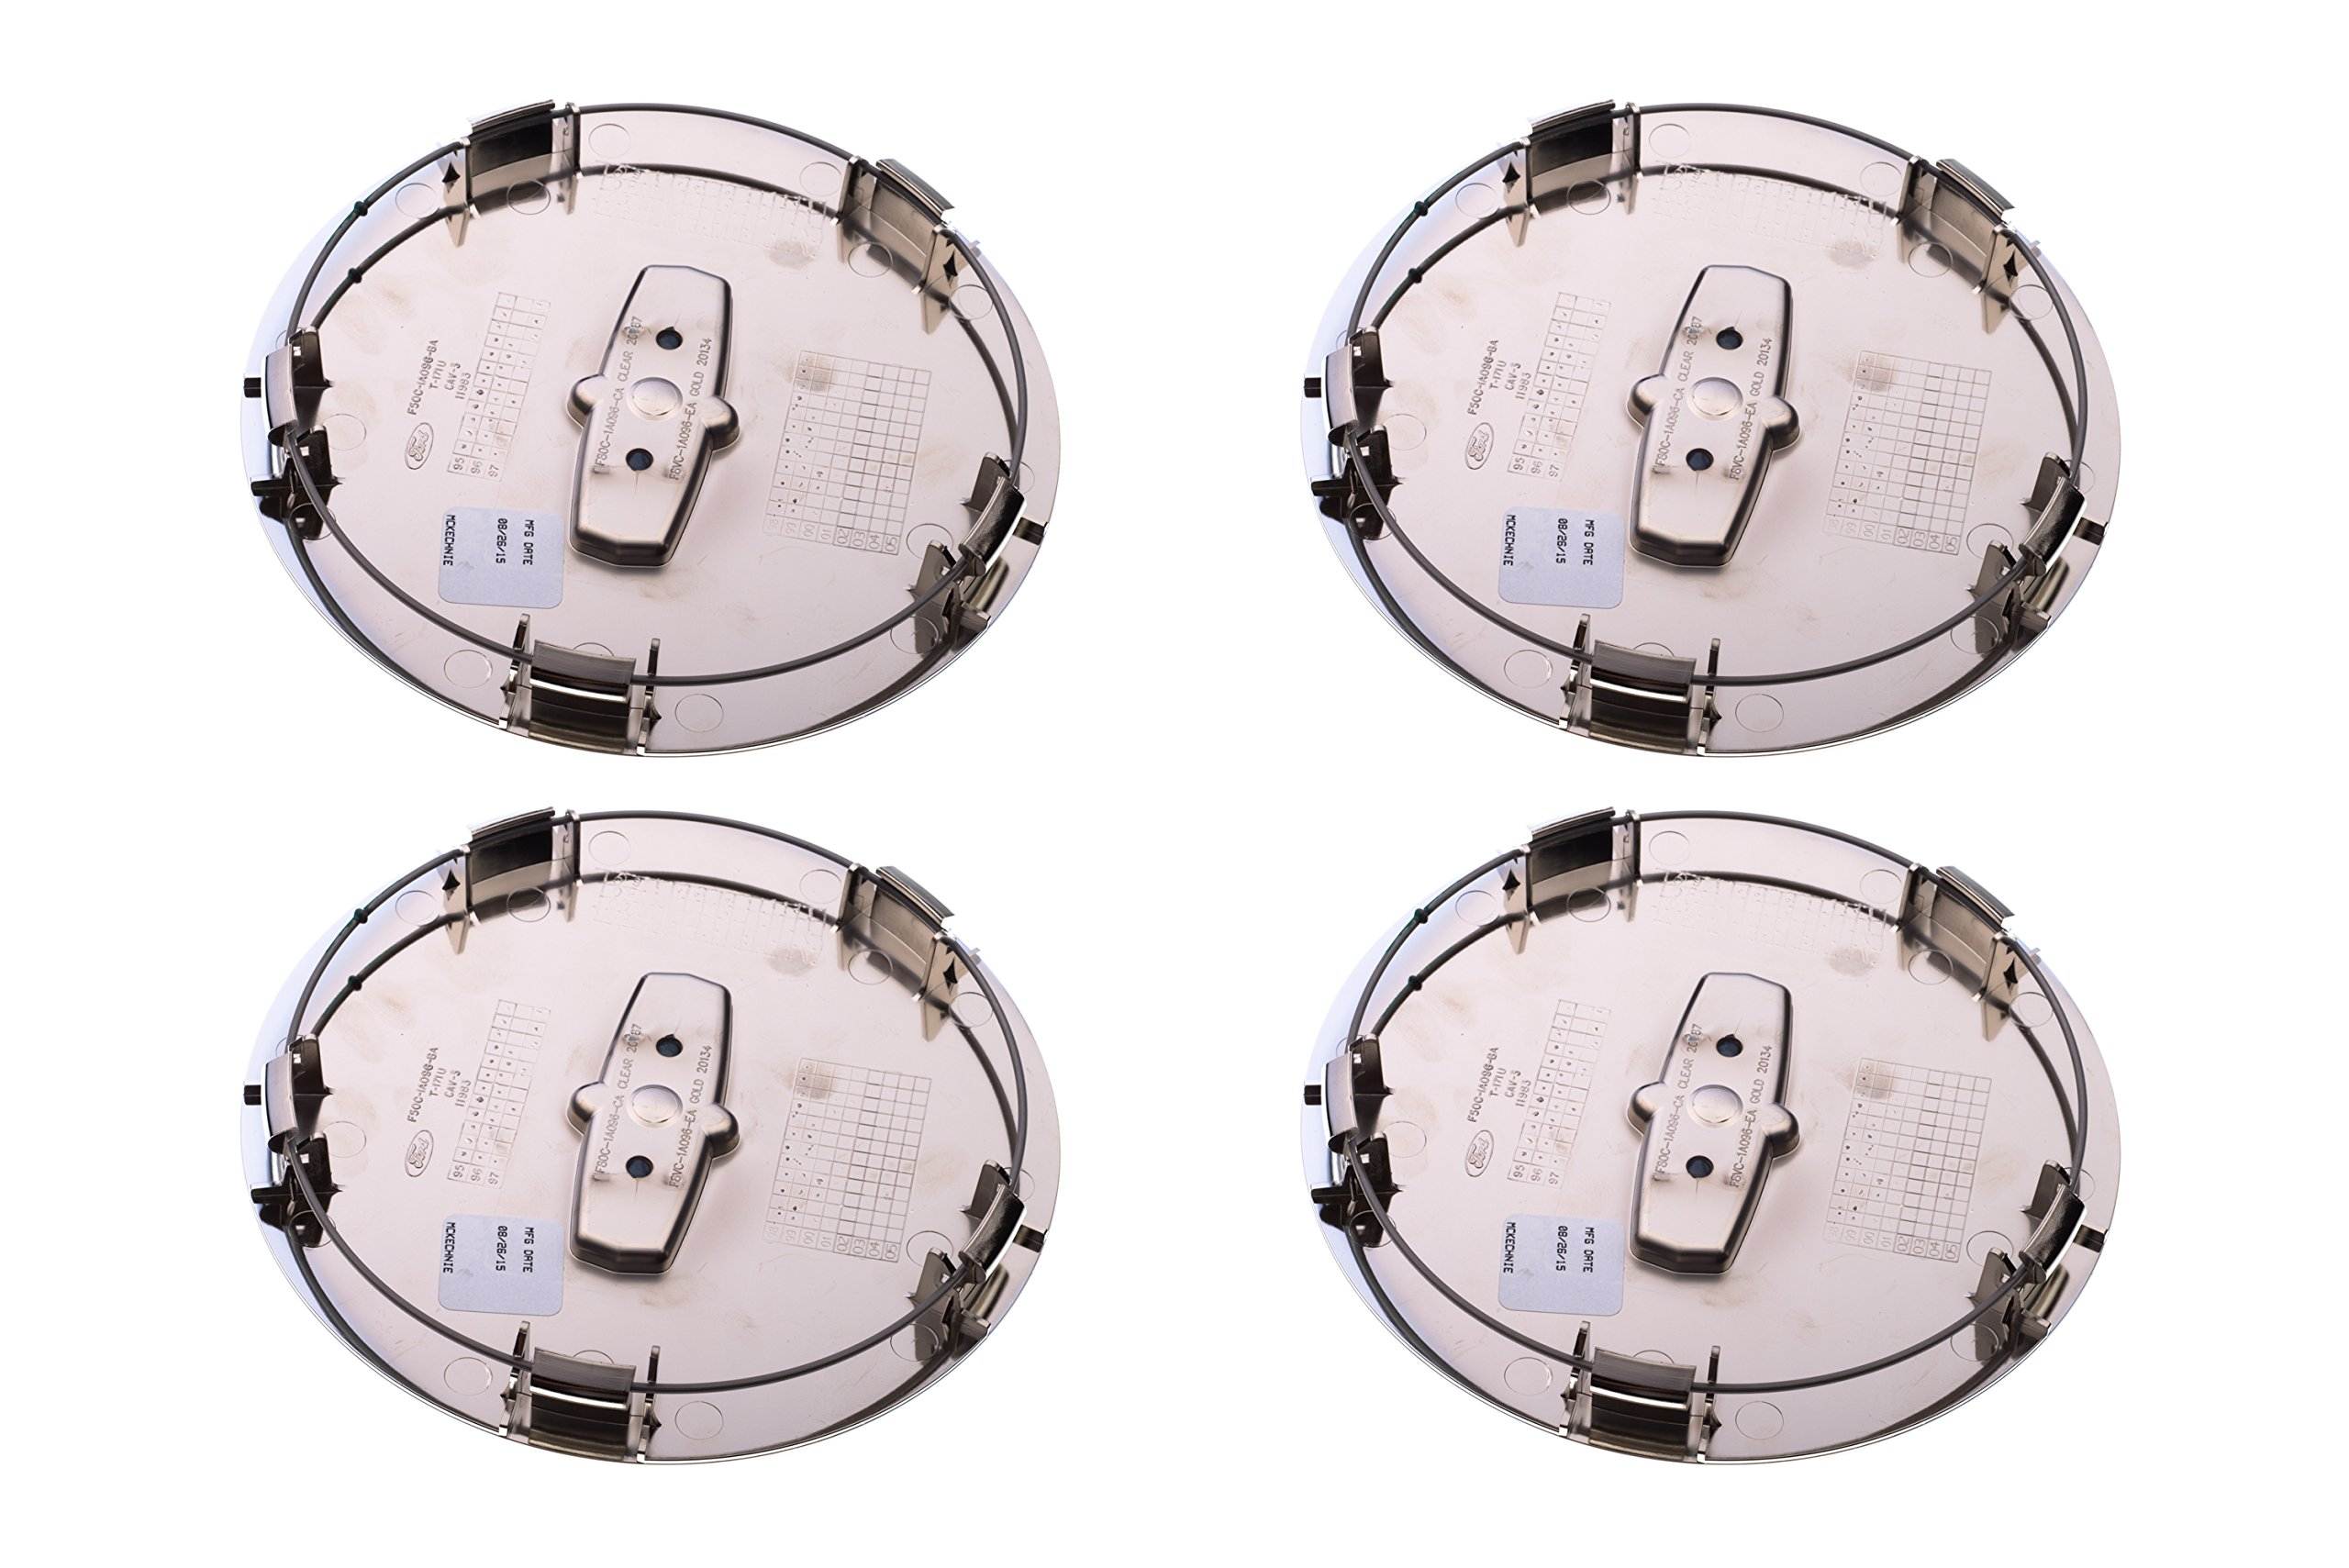 1998-2002 Lincoln Town Car Cartier Chrome Wheel Center Cap Hub Covers x4 OEM NEW by Ford (Image #2)